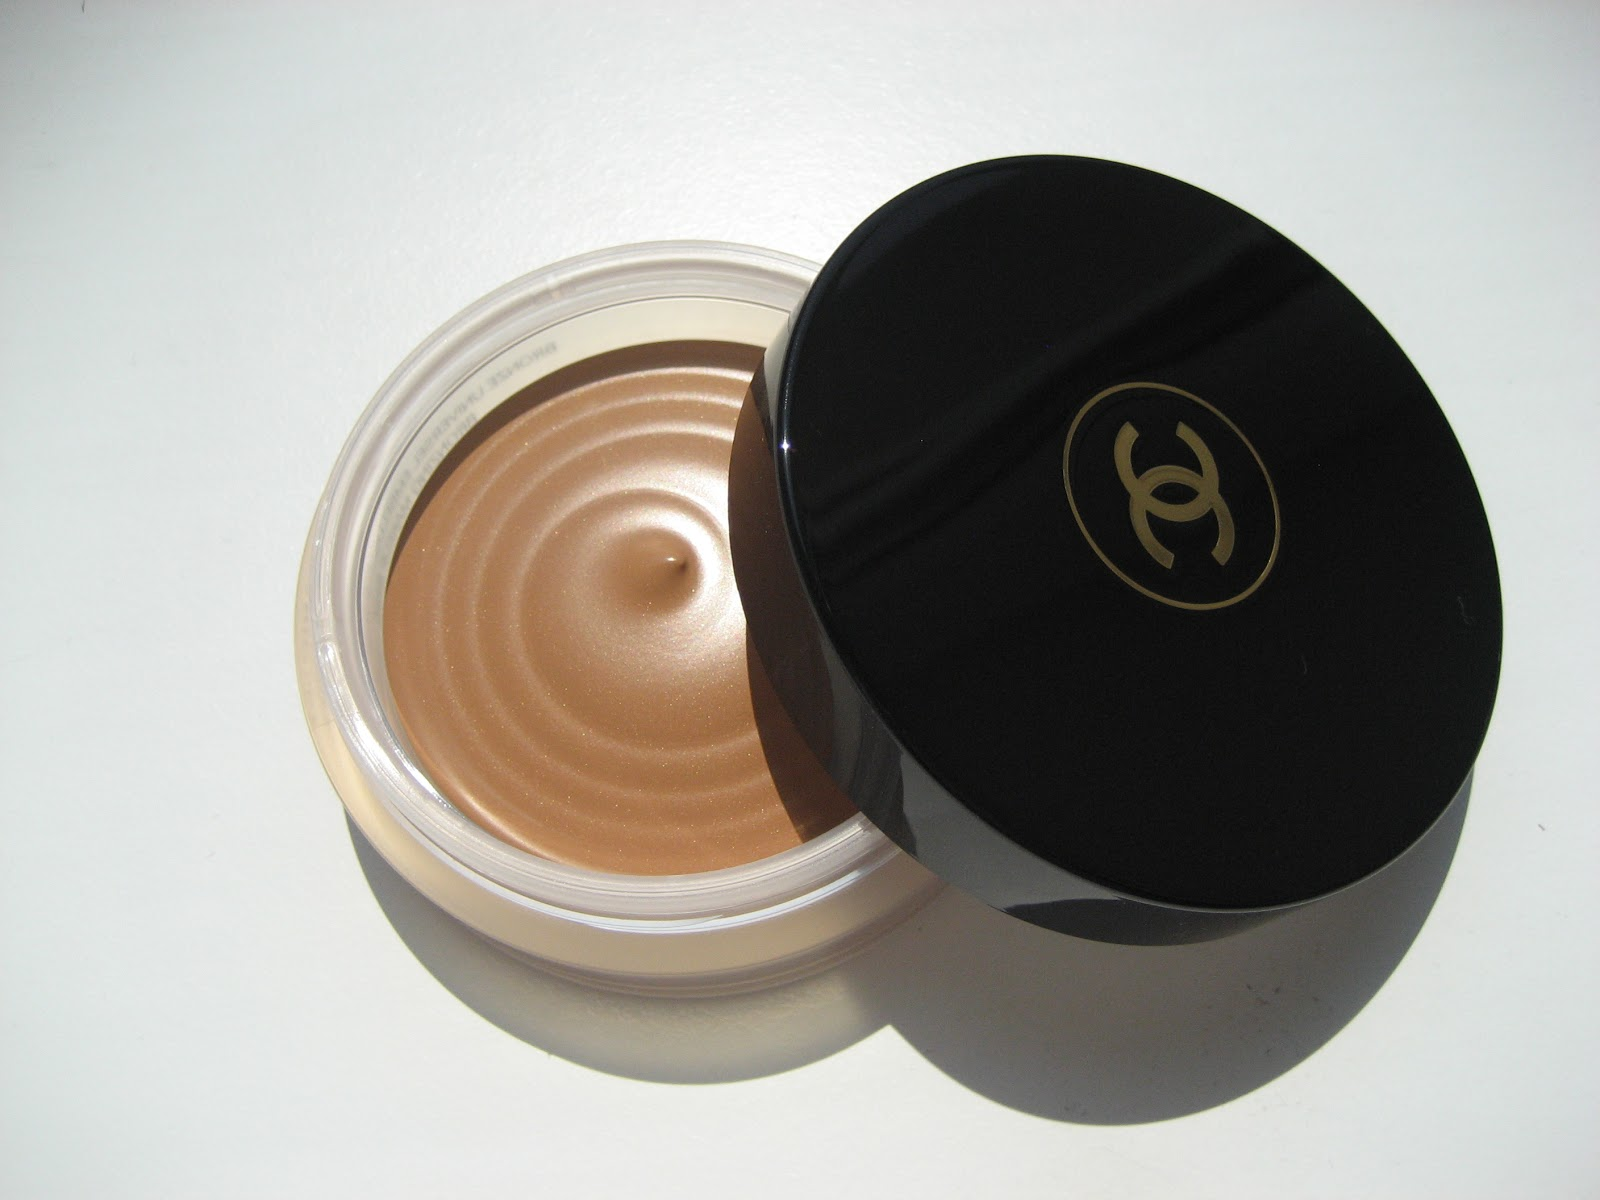 delicate hummingbird chanel soleil tan de chanel bronzing makeup base. Black Bedroom Furniture Sets. Home Design Ideas